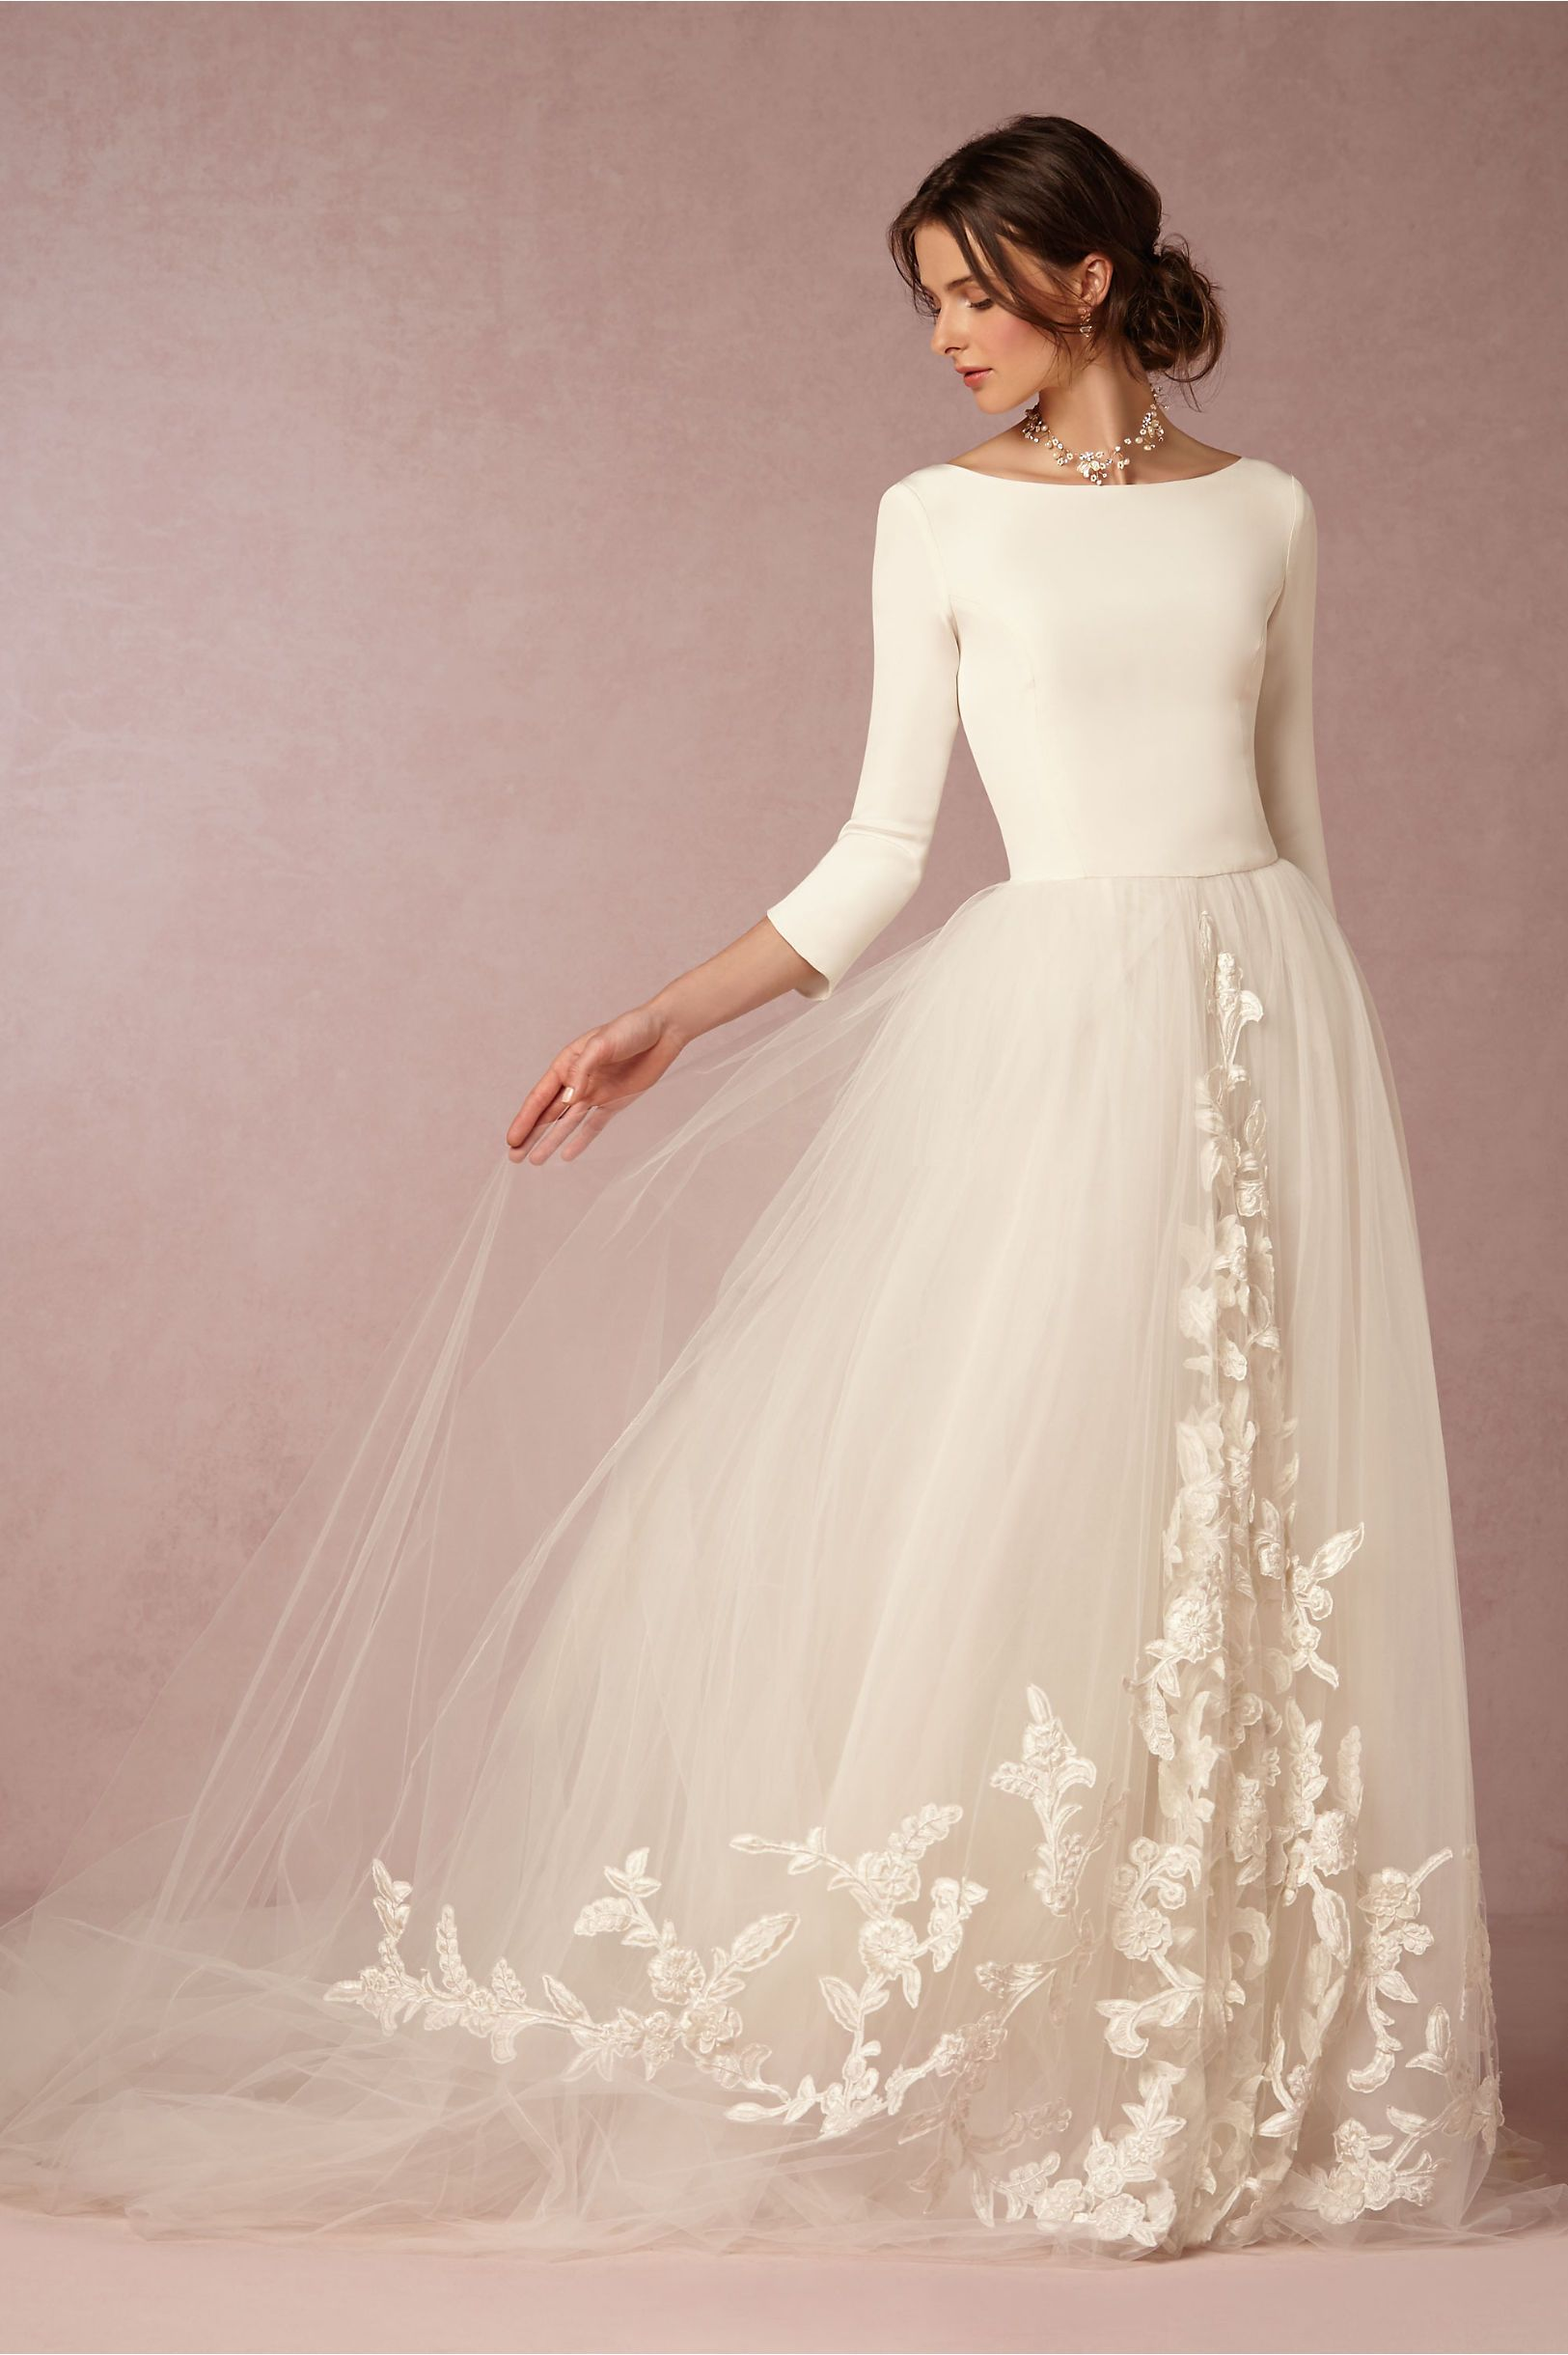 80cd244a231 21 Ridiculously Stunning Long Sleeved Wedding Dresses to Covet